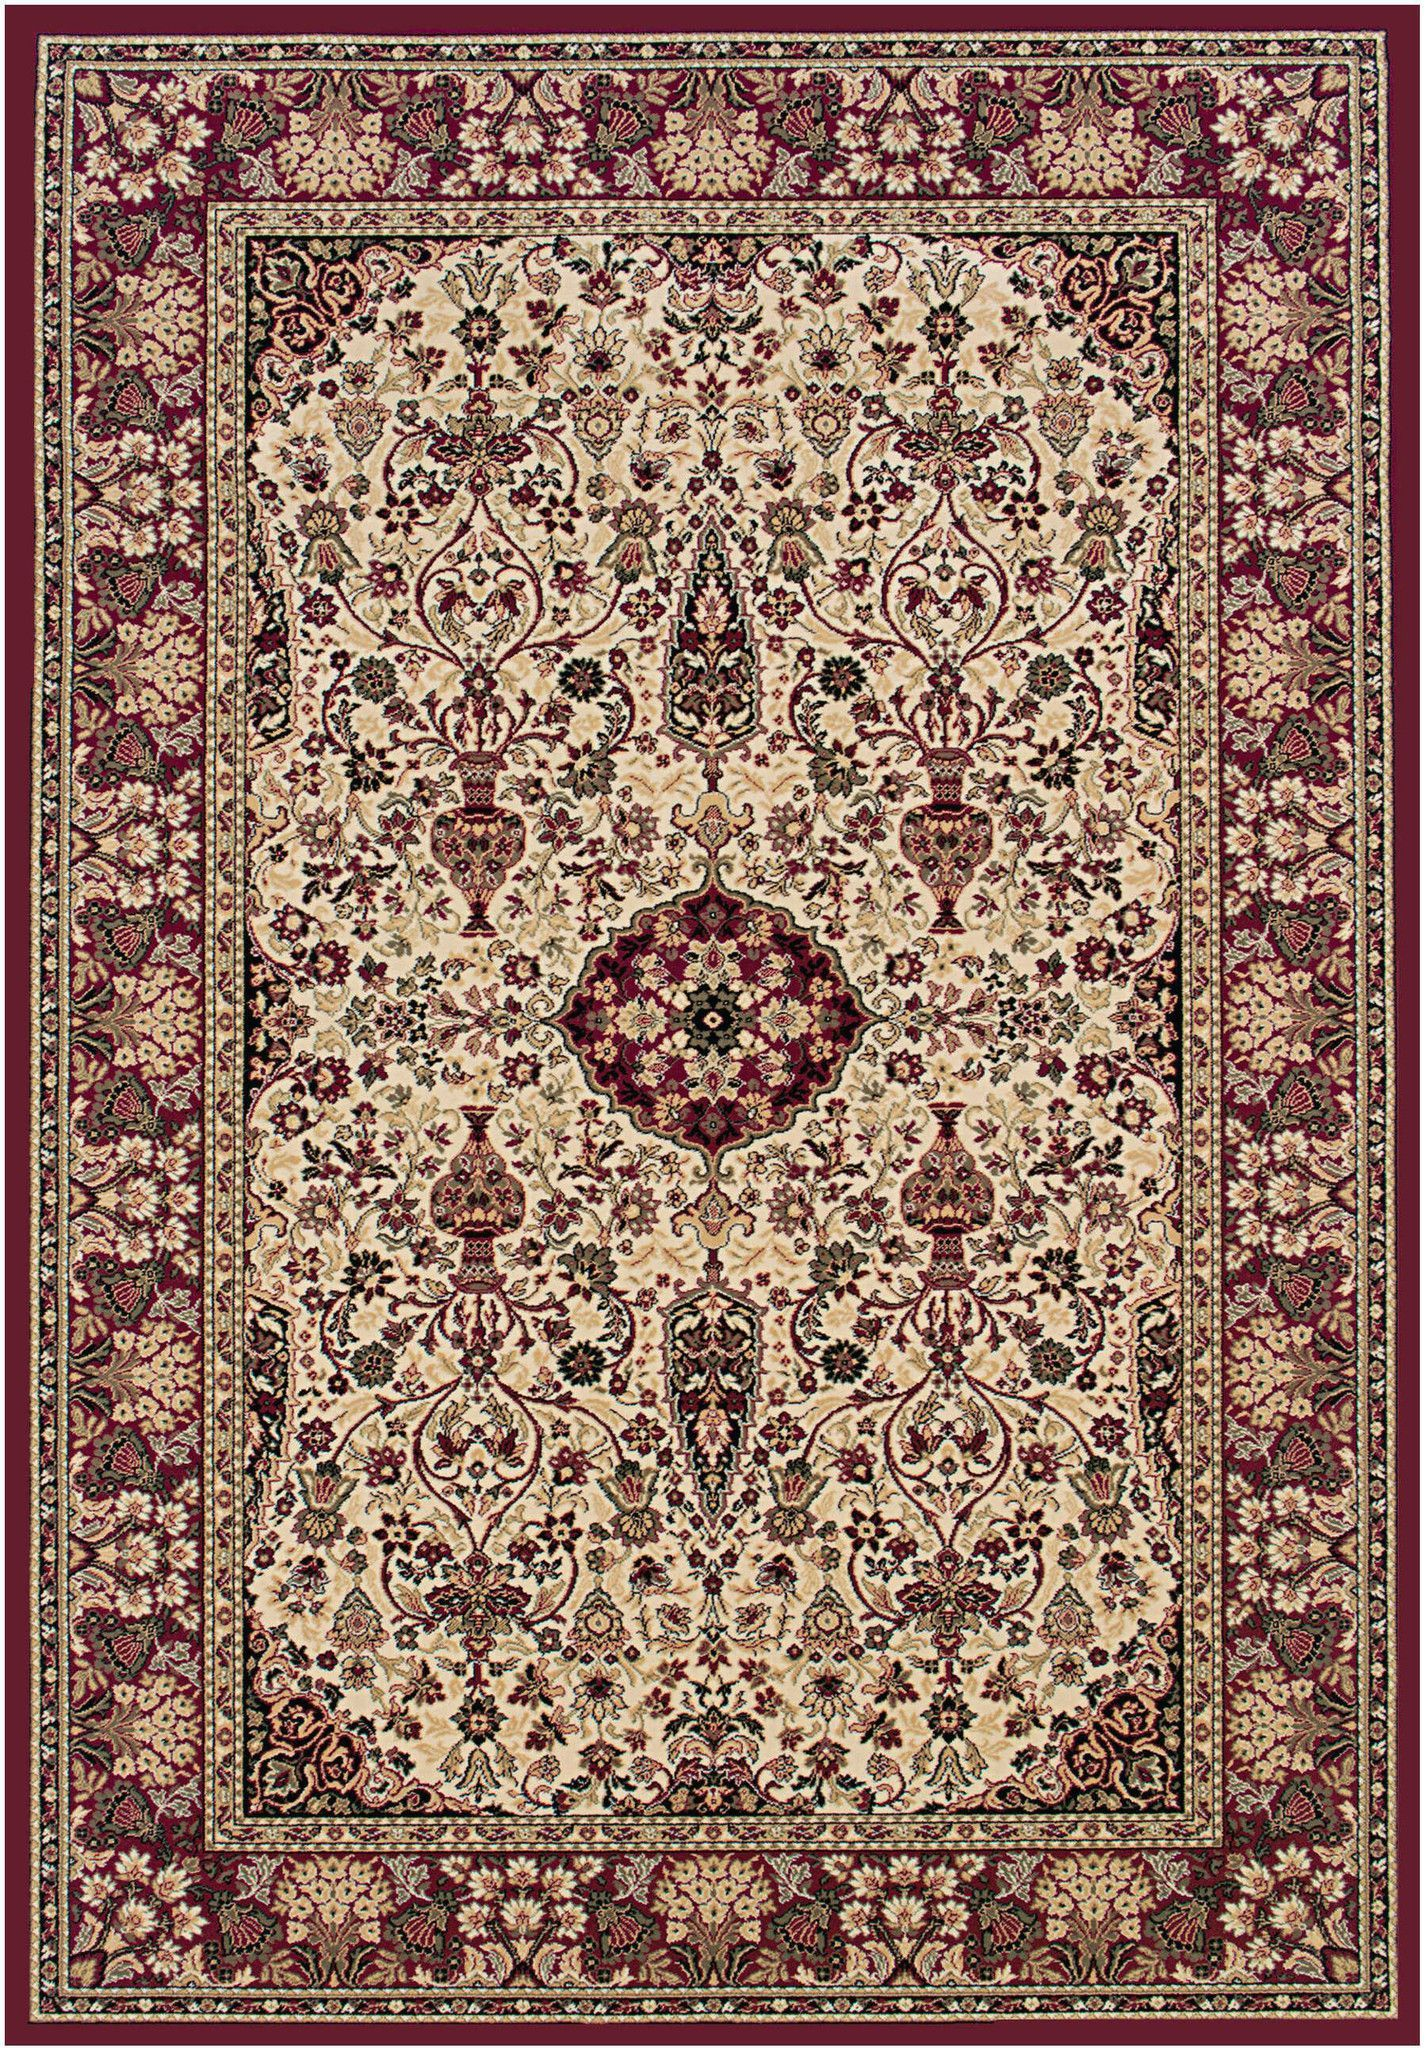 Couristan Everest Ardebil Area Rug In 2020 Rugs On Carpet Area Rugs Traditional Rugs